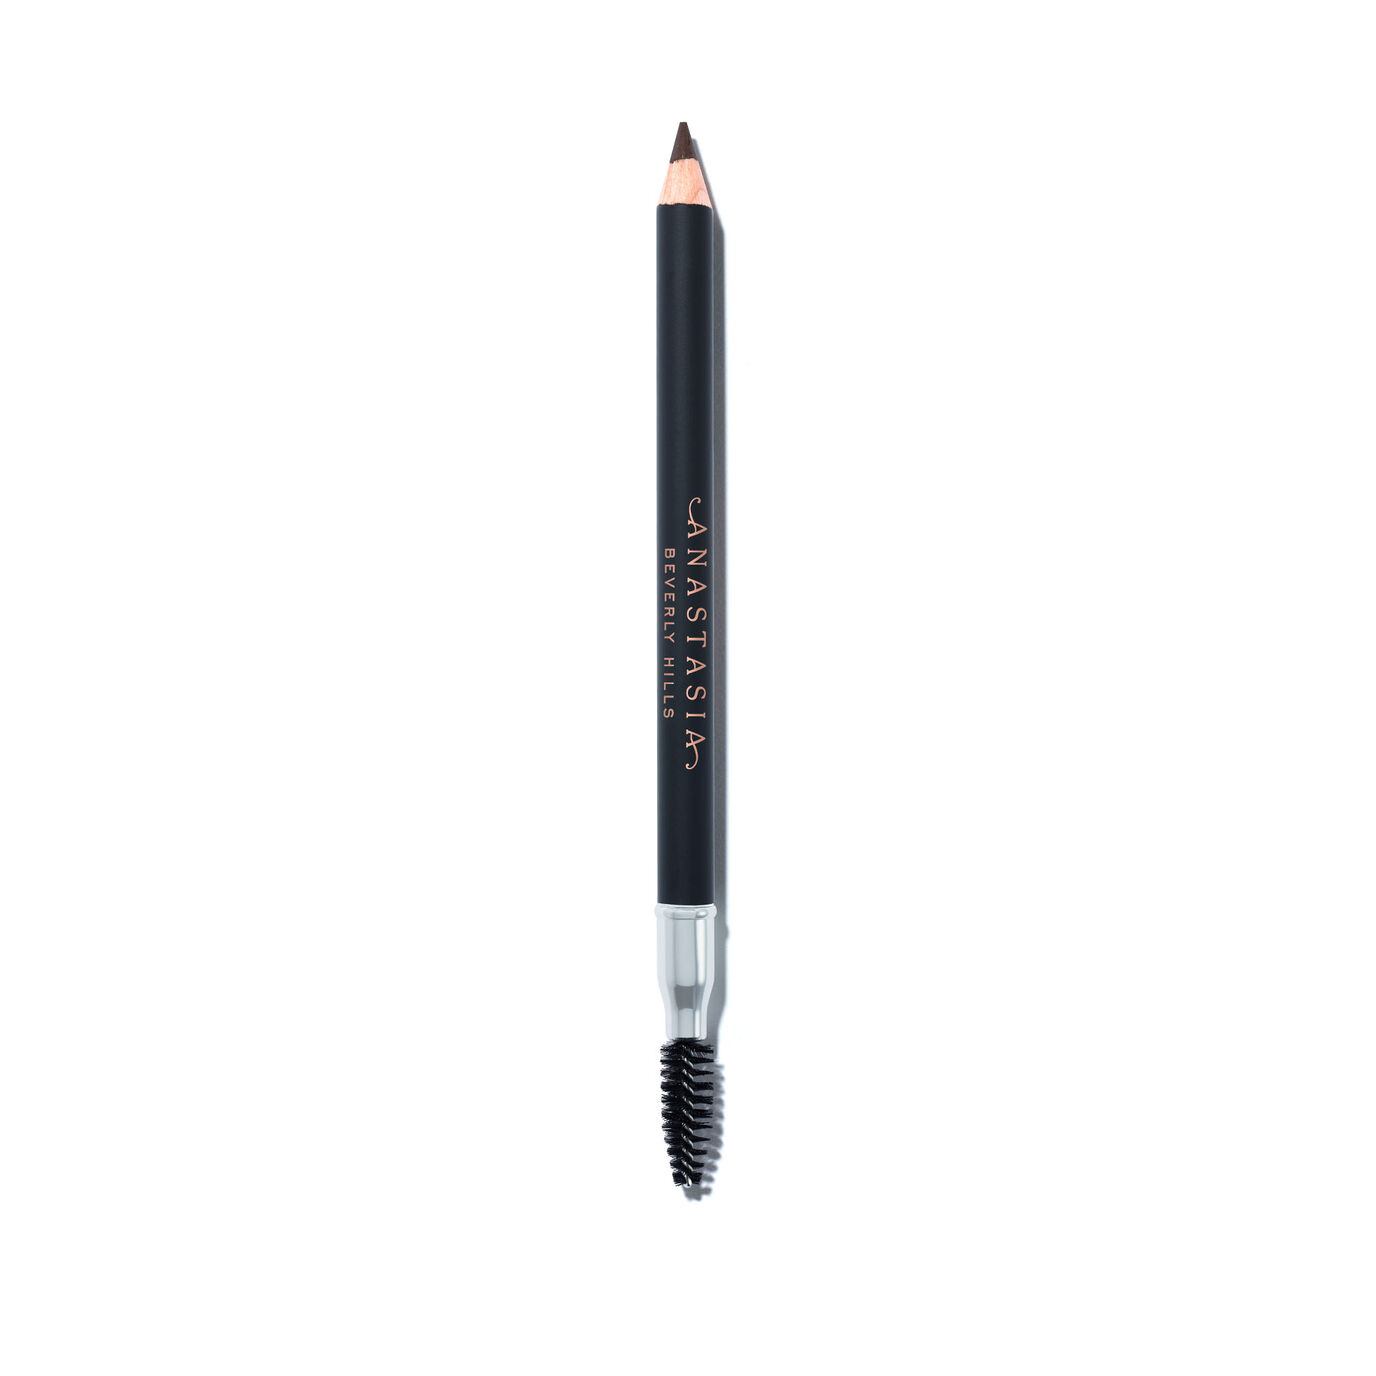 44c1cfec80a Perfect Brow Pencil | Eyebrow Pencils - Anastasia Beverly Hills